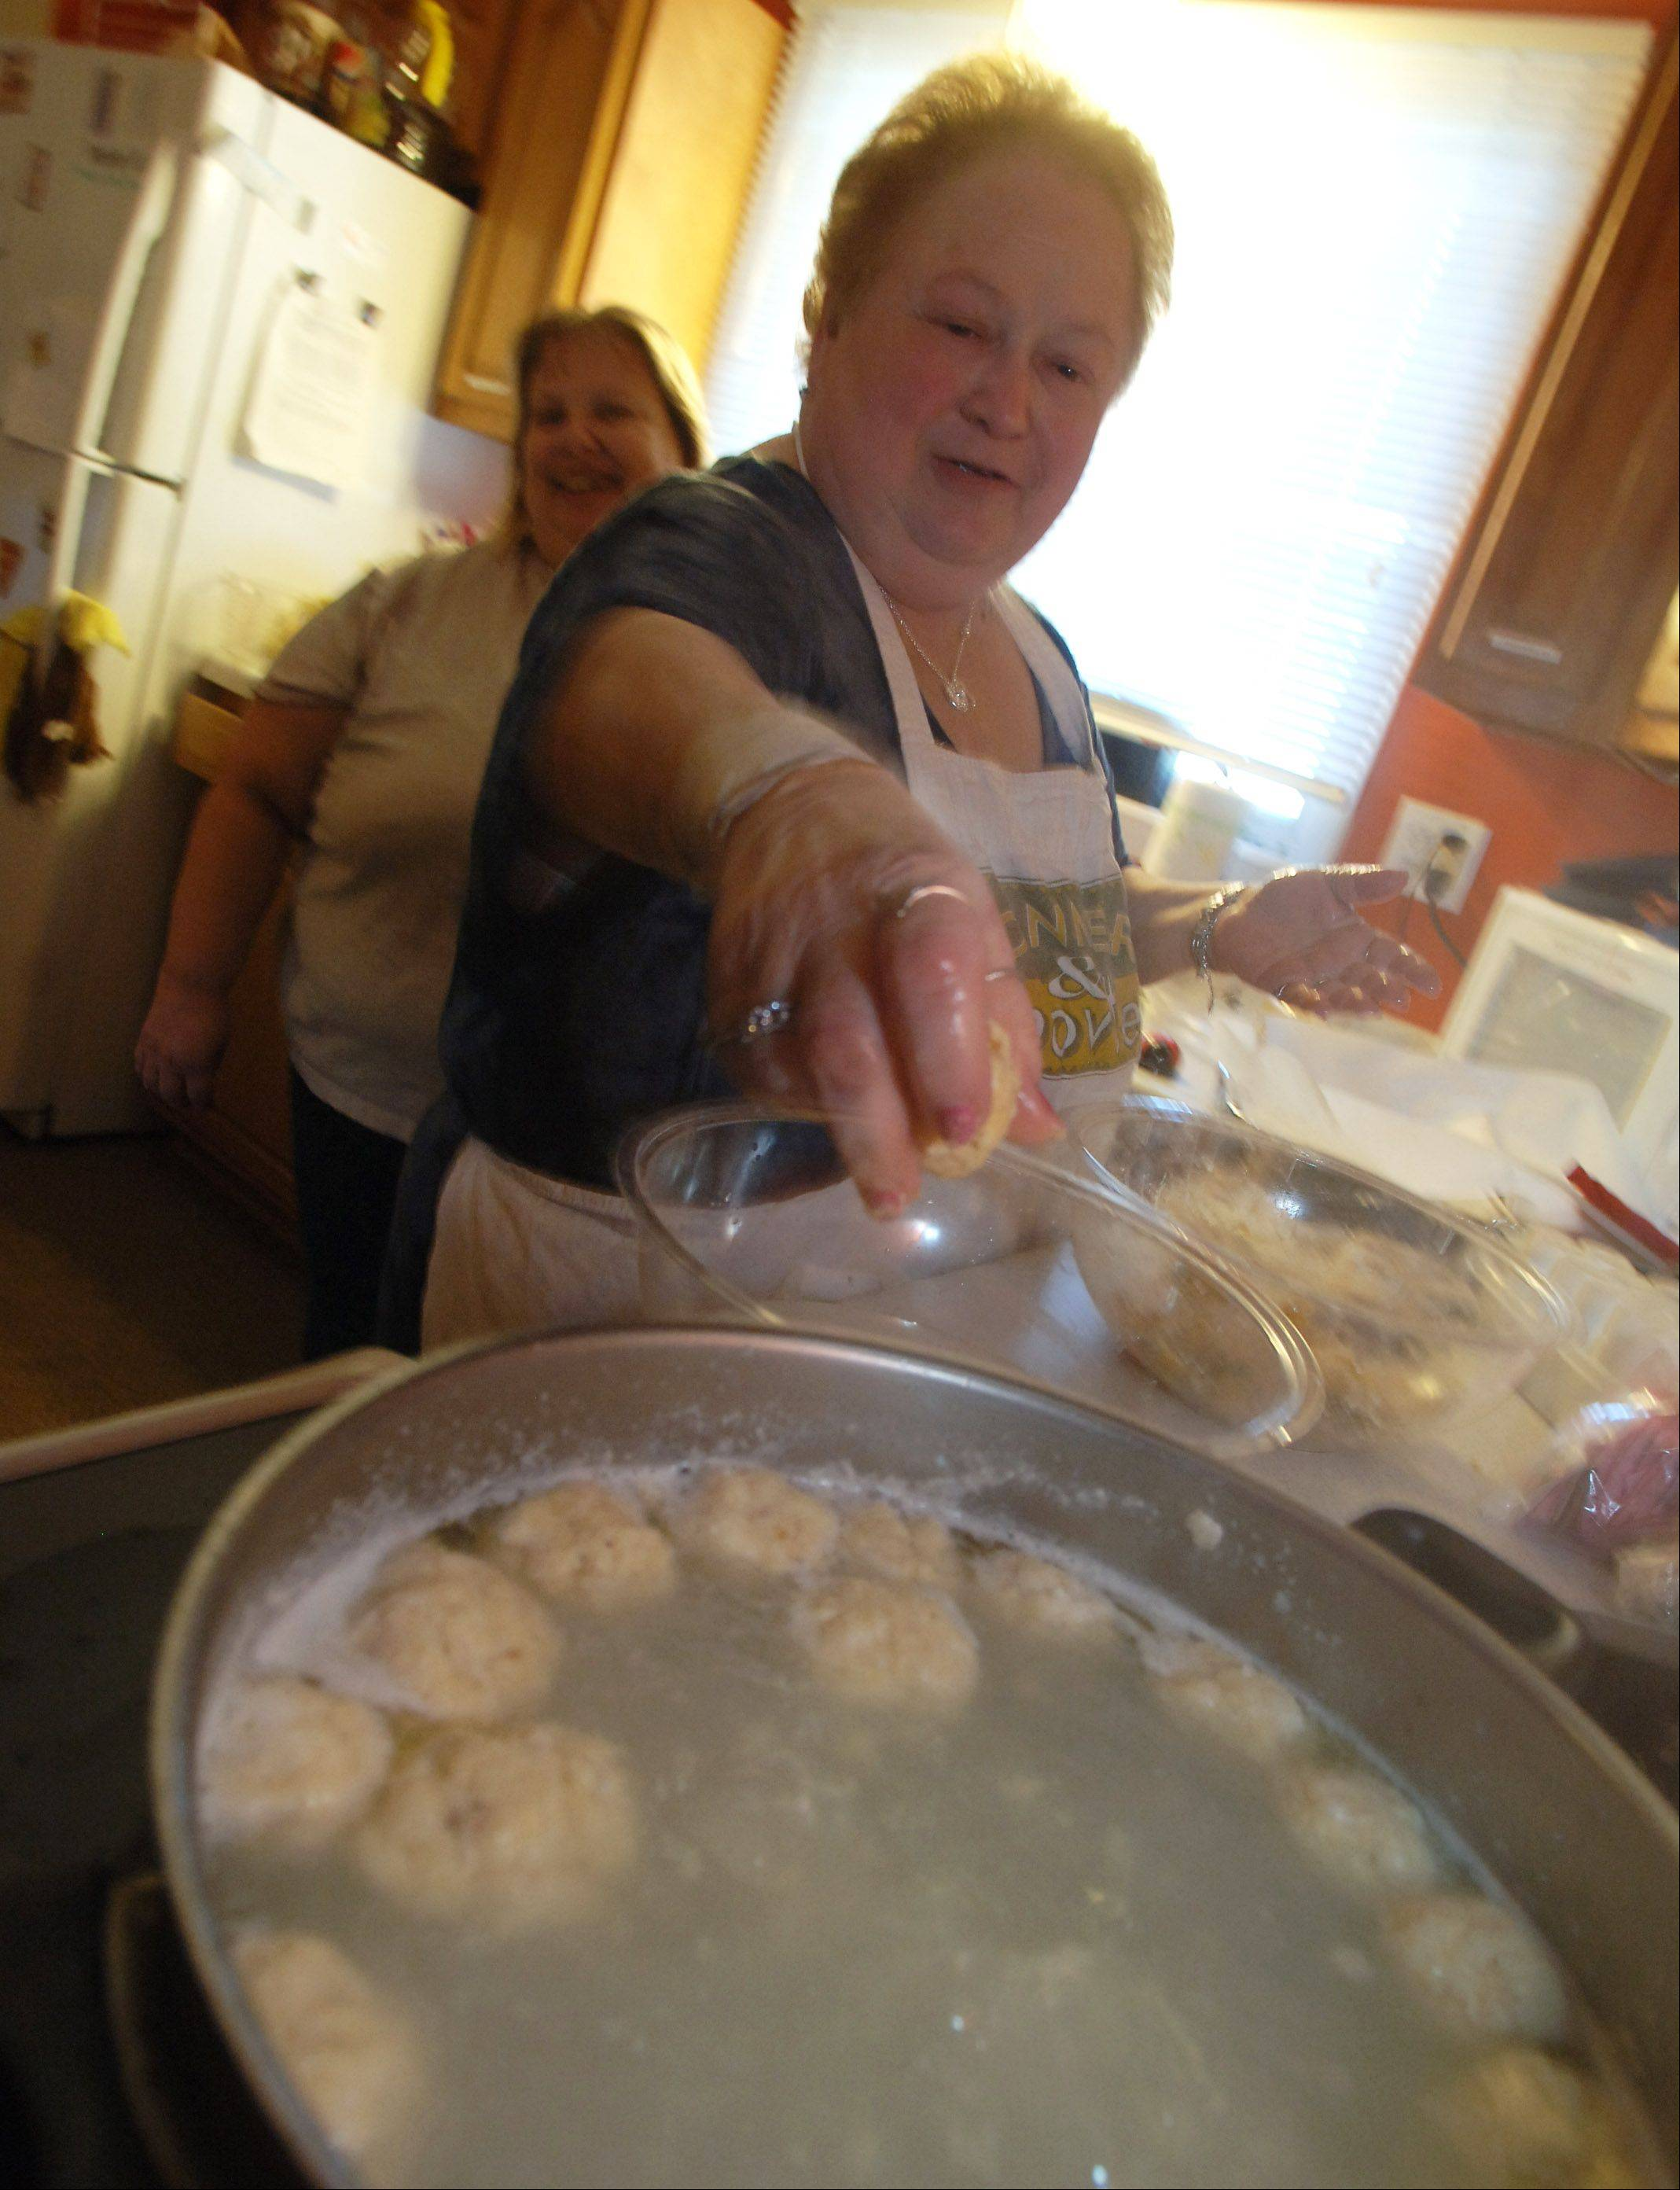 Nancy Hohs, left, of Round Lake Beach and Leah Greenberg of Gurnee prepare matzo ball soup Friday at Congregation Or Tikvah in Grayslake. The congregation is holding their Passover Seder meal Saturday evening for around 50 people.